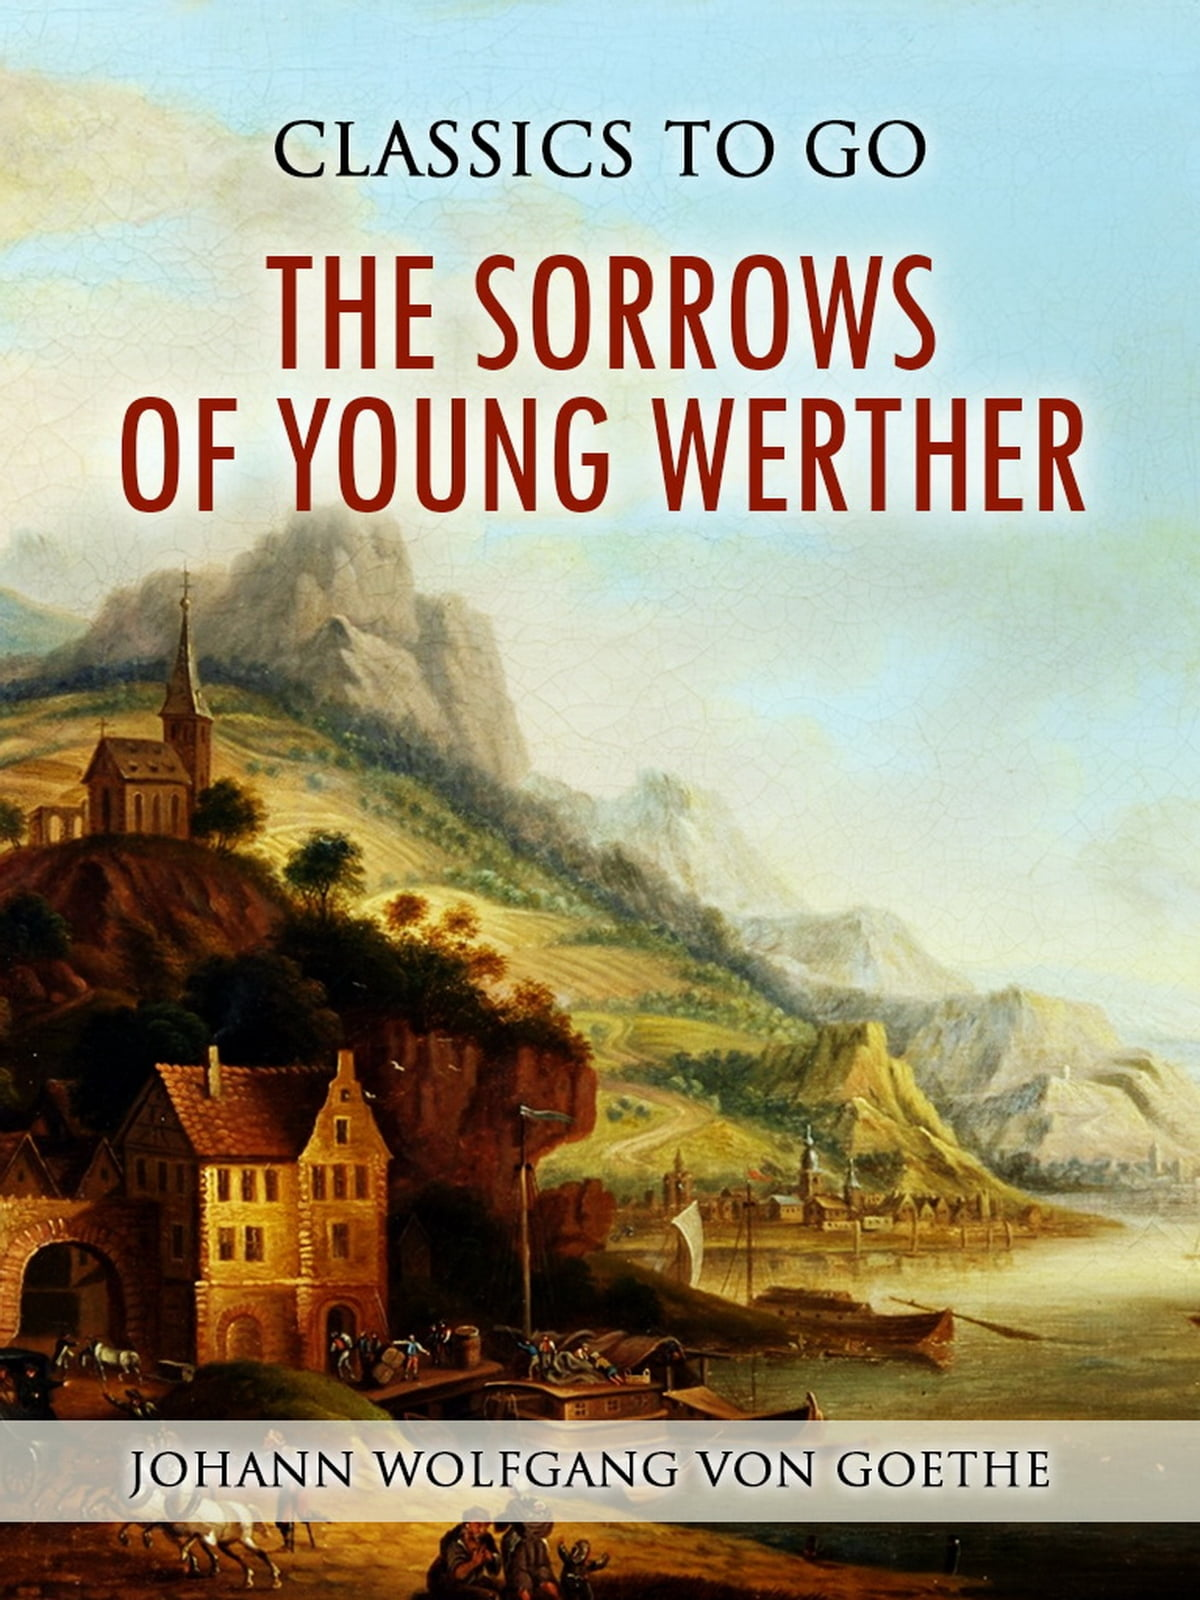 Johann Wolfgang Von Goethe Libros The Sorrows Of Young Werther Ebook By Johann Wolfgang Von Goethe Rakuten Kobo